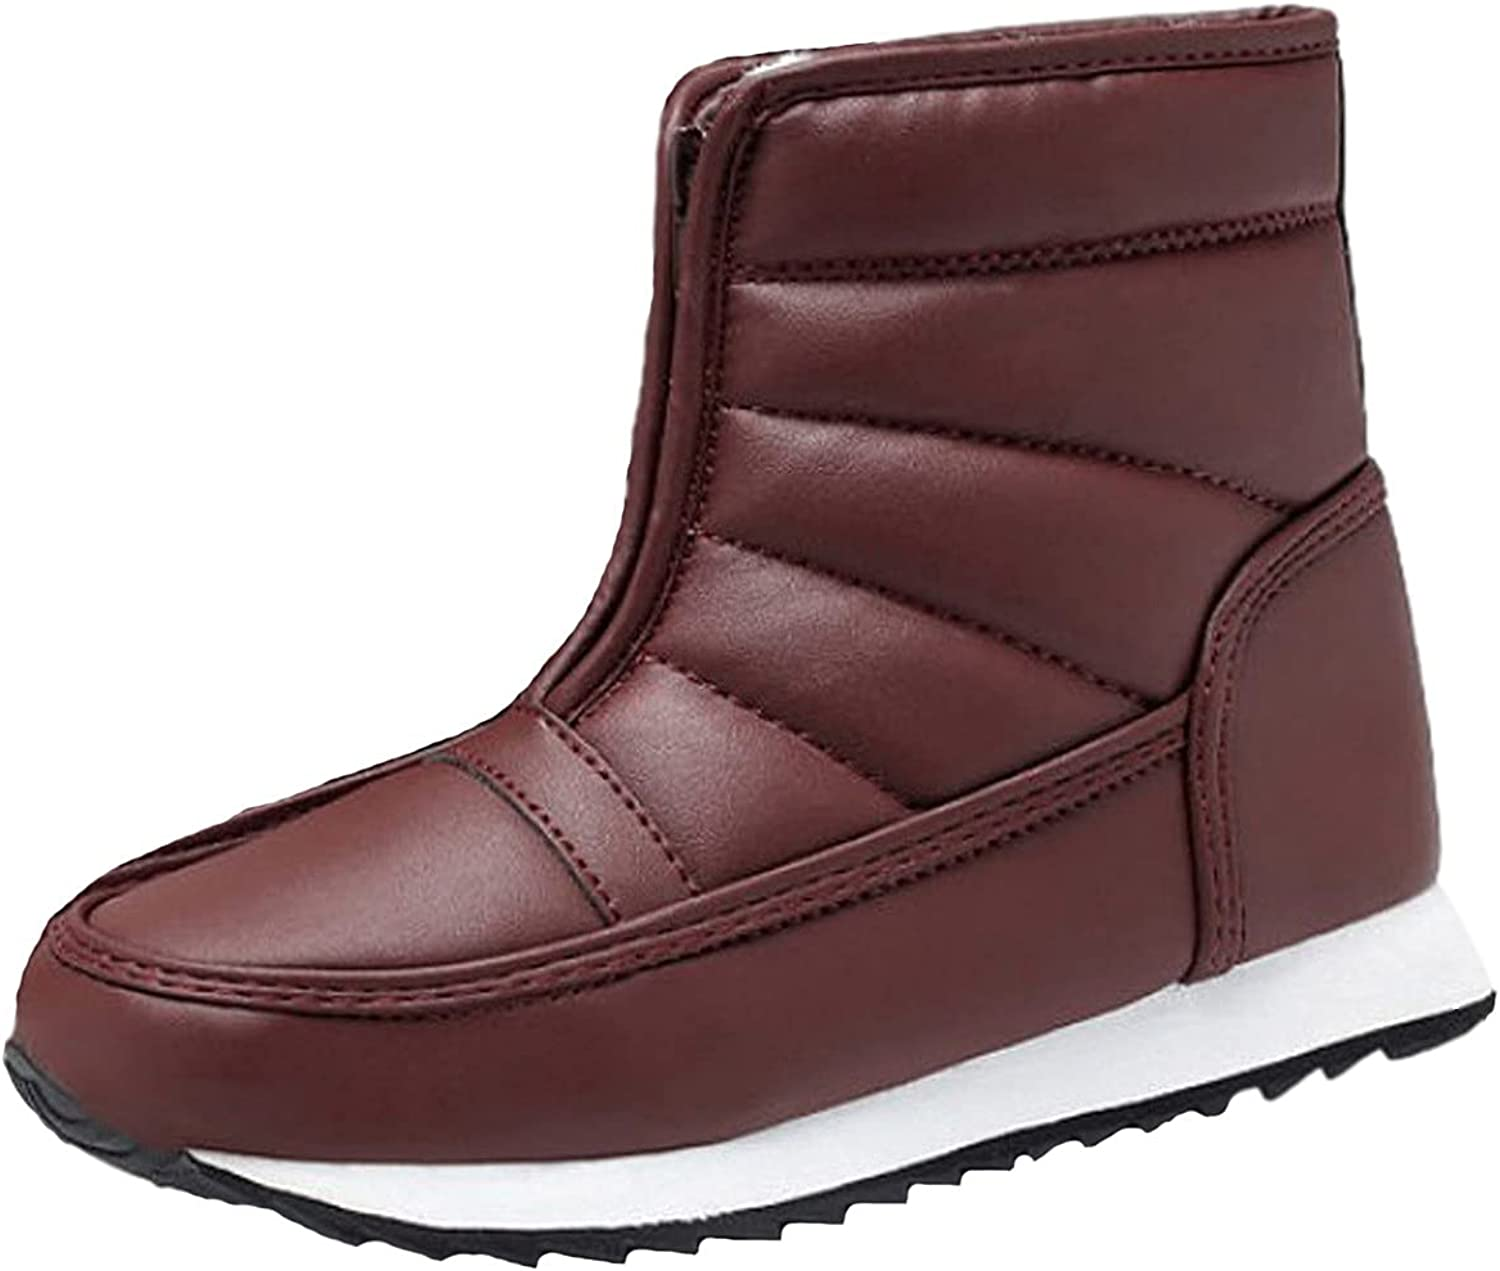 BLVB Booties for Women Winter Zipper Solid Color Large Size Boot